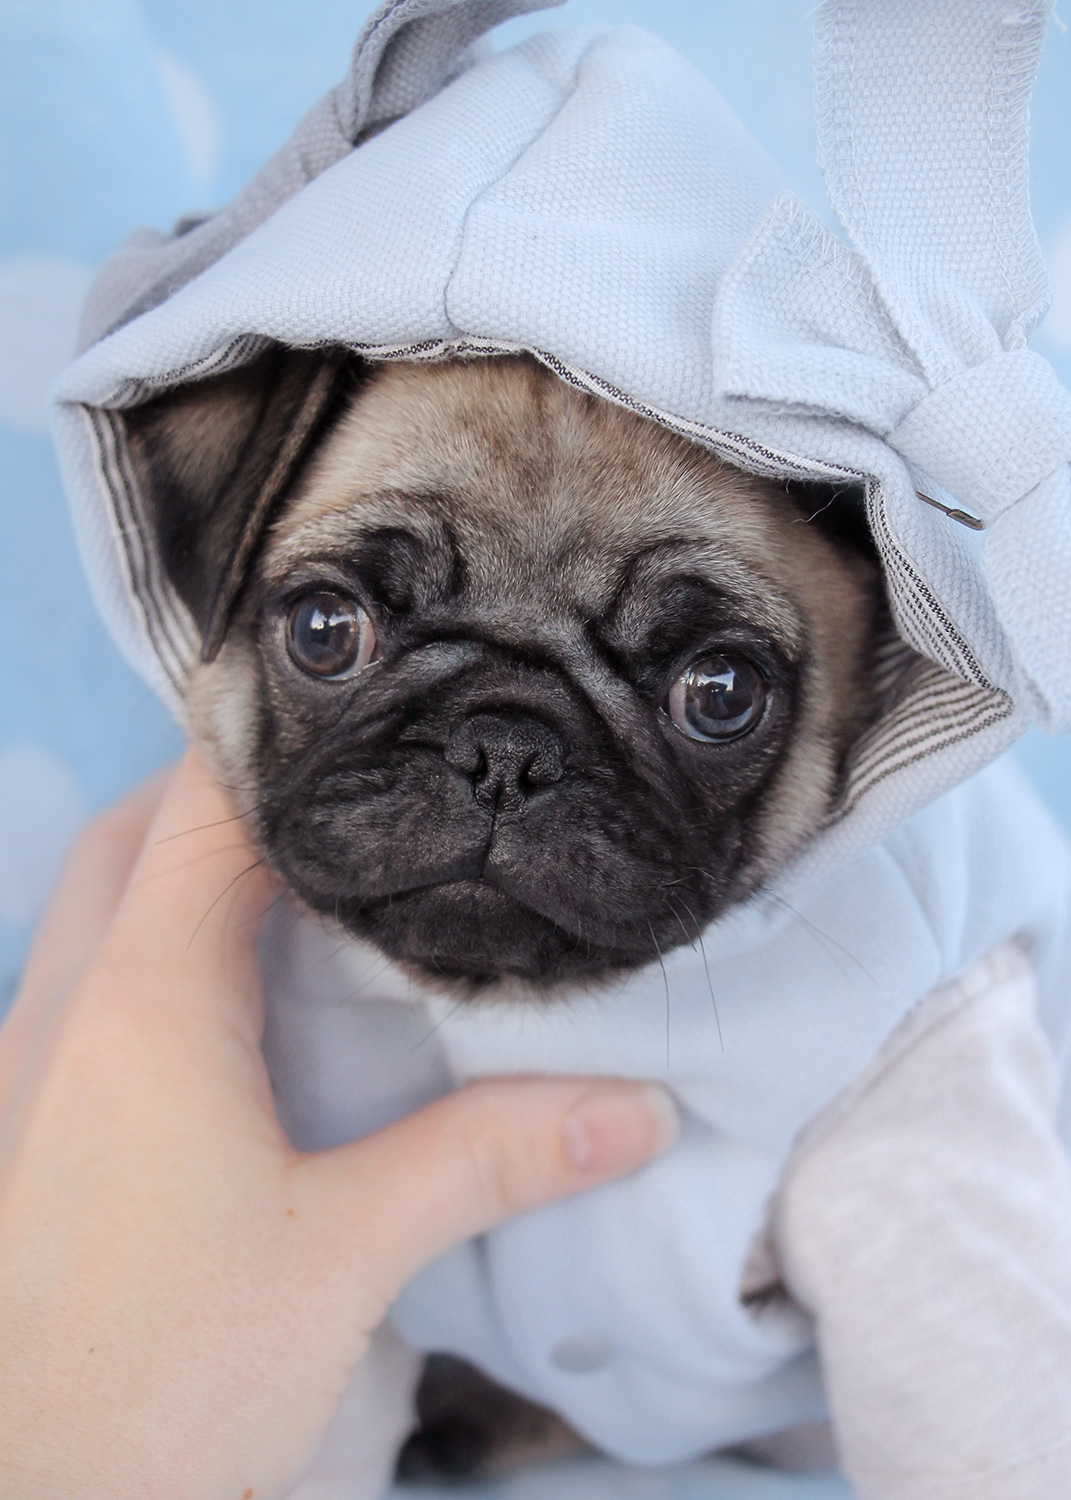 Pug Puppies For Sale In Miami Fort Lauderdale Fl